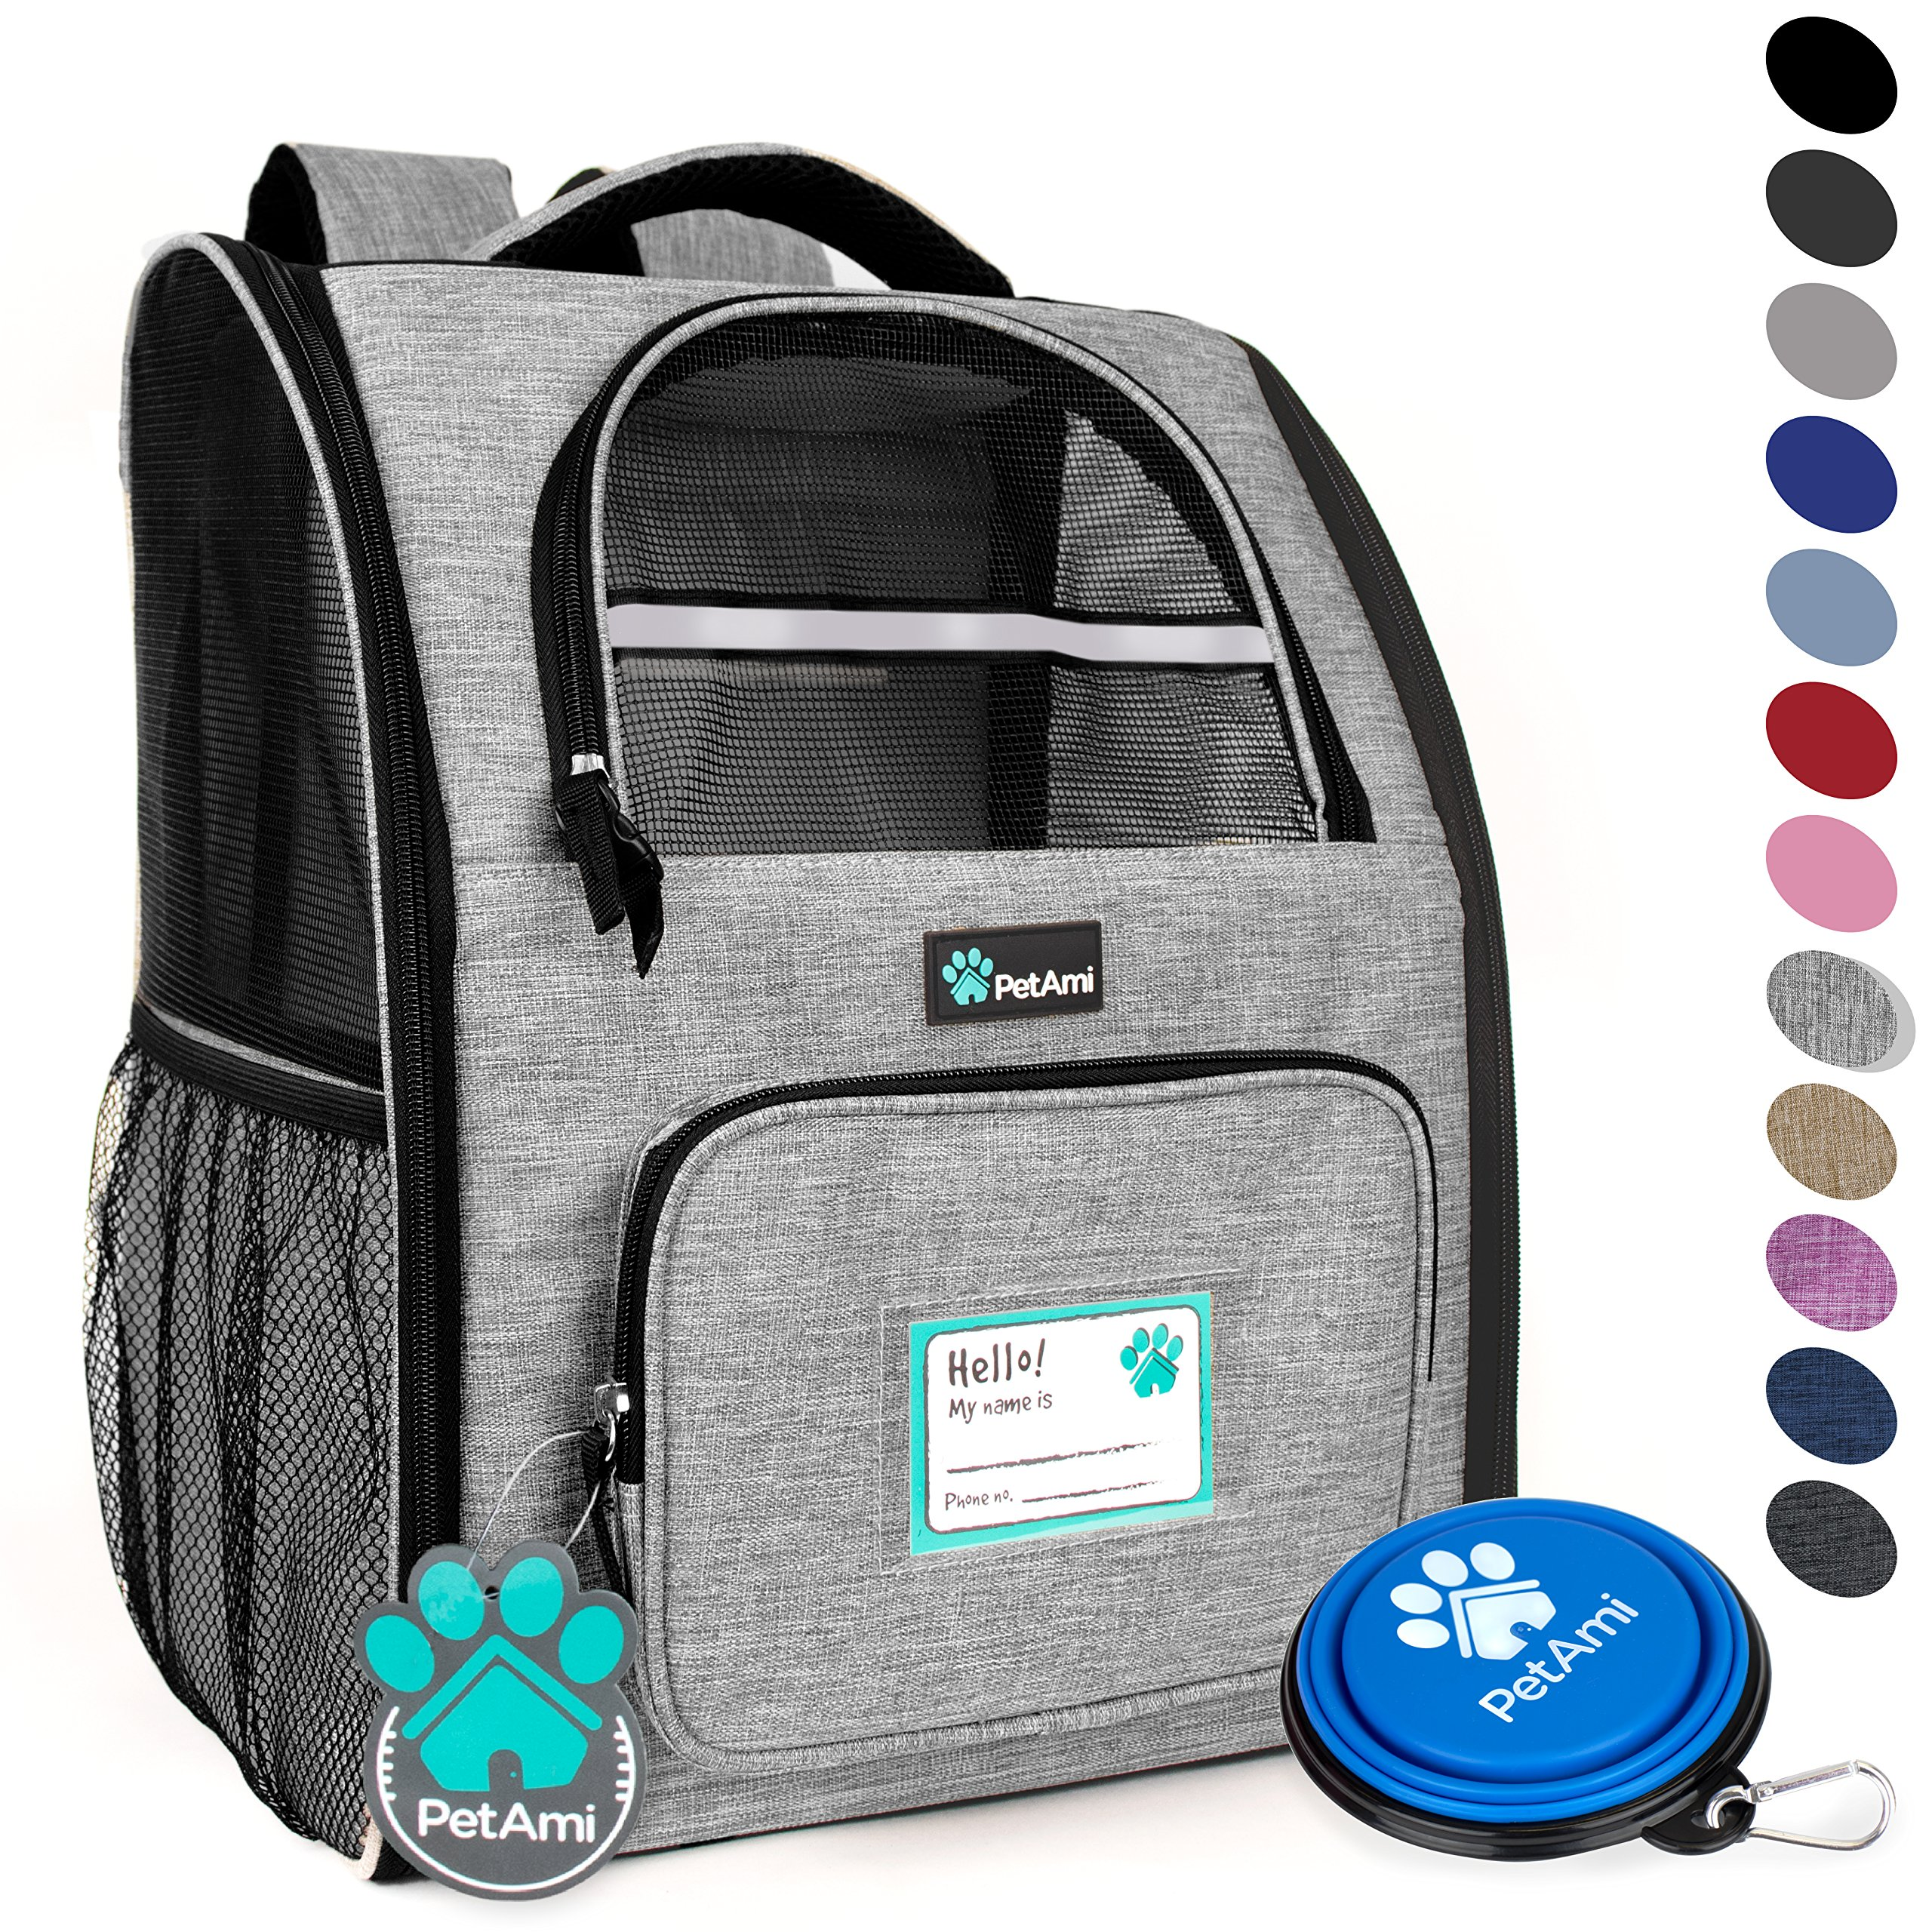 PetAmi Deluxe Pet Carrier Backpack for Small Cats and Dogs, Puppies | Ventilated Design, Two-Sided Entry, Safety Features and Cushion Back Support | for Travel, Hiking, Outdoor Use (Heather Gray) by PetAmi